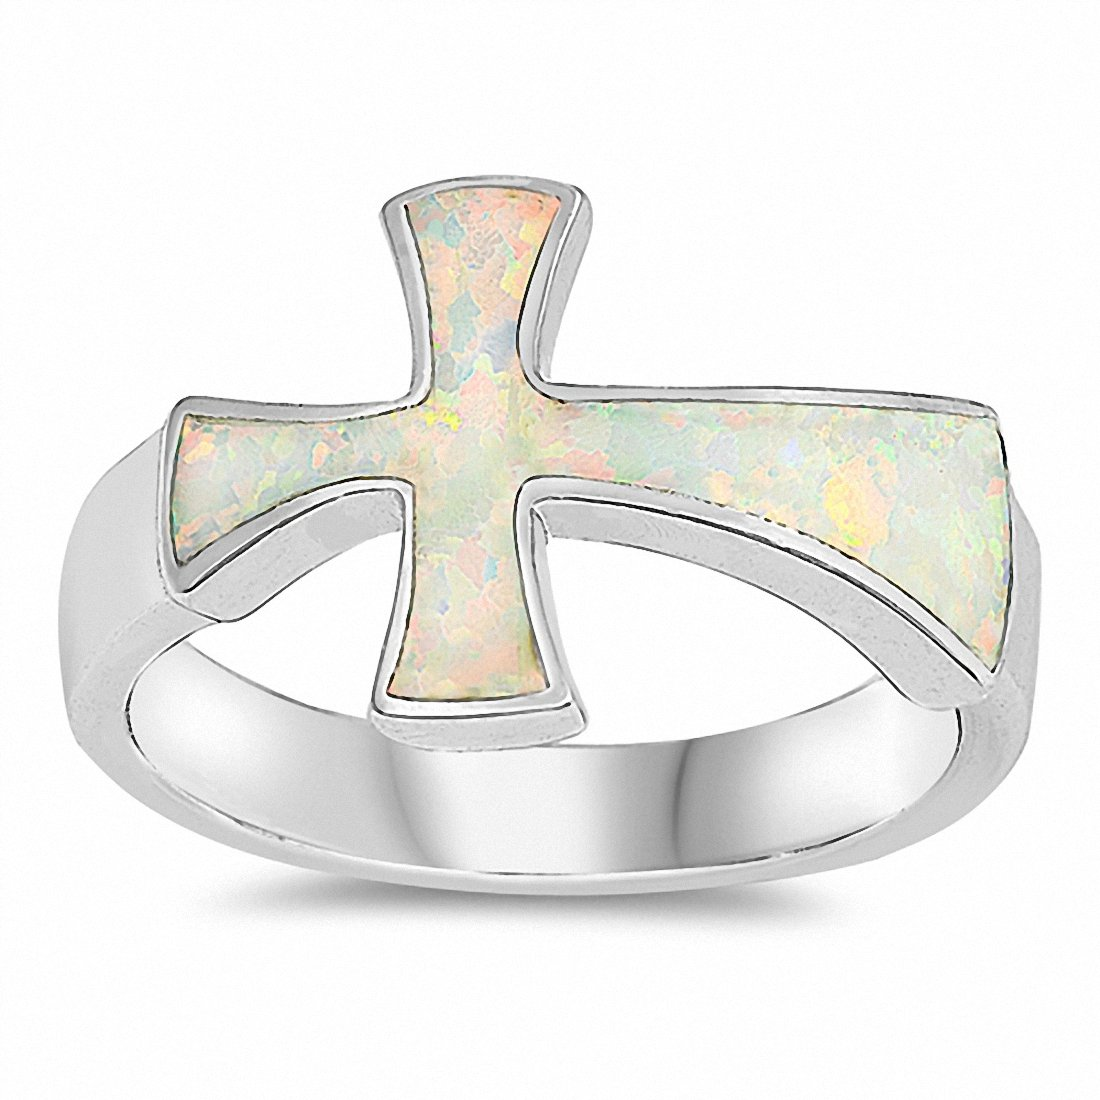 Sideways Cross Ring Created Opal 925 Sterling Silver Choose Color